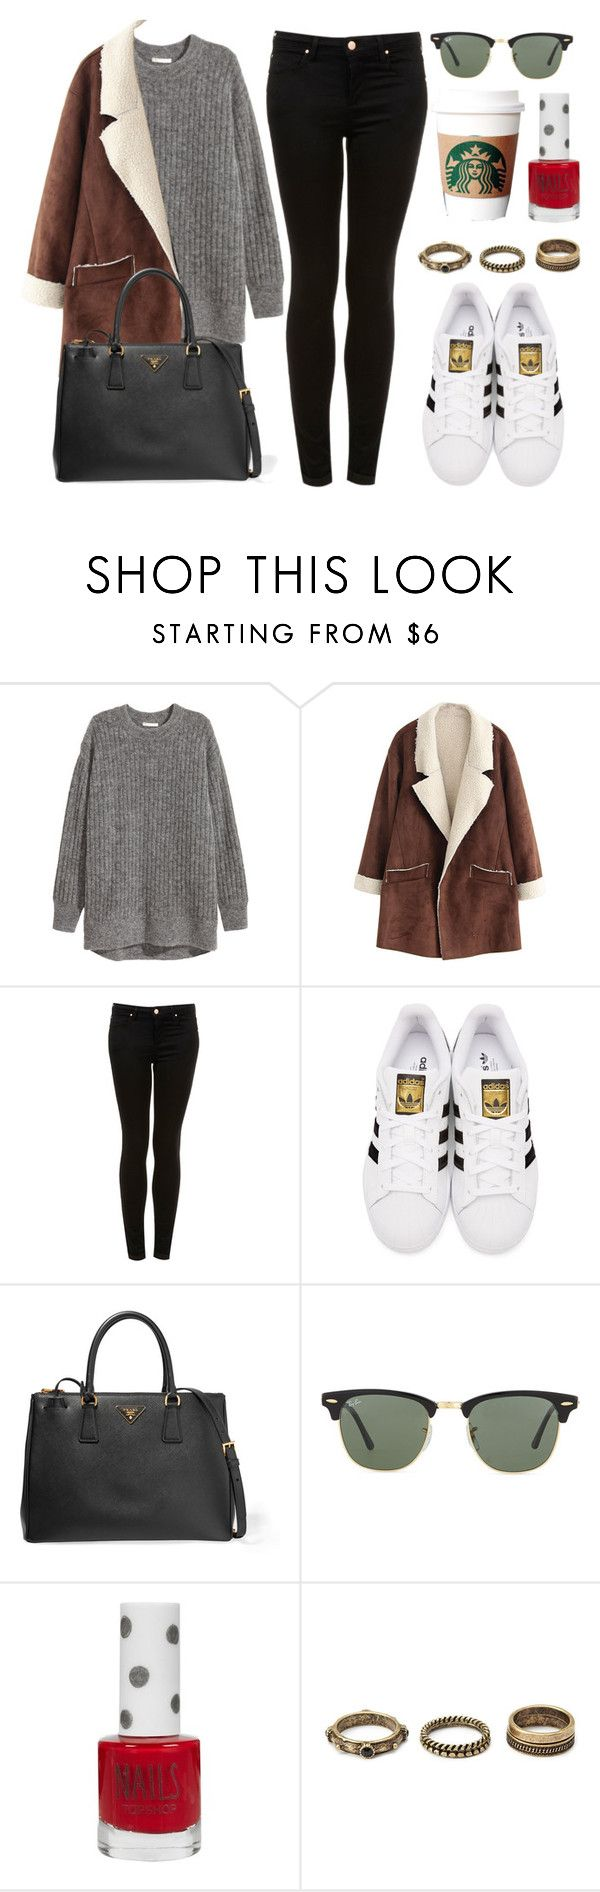 """""""Sin título #11981"""" by vany-alvarado ❤ liked on Polyvore featuring H&M, Topshop, adidas Originals, Prada, Ray-Ban and Forever 21"""